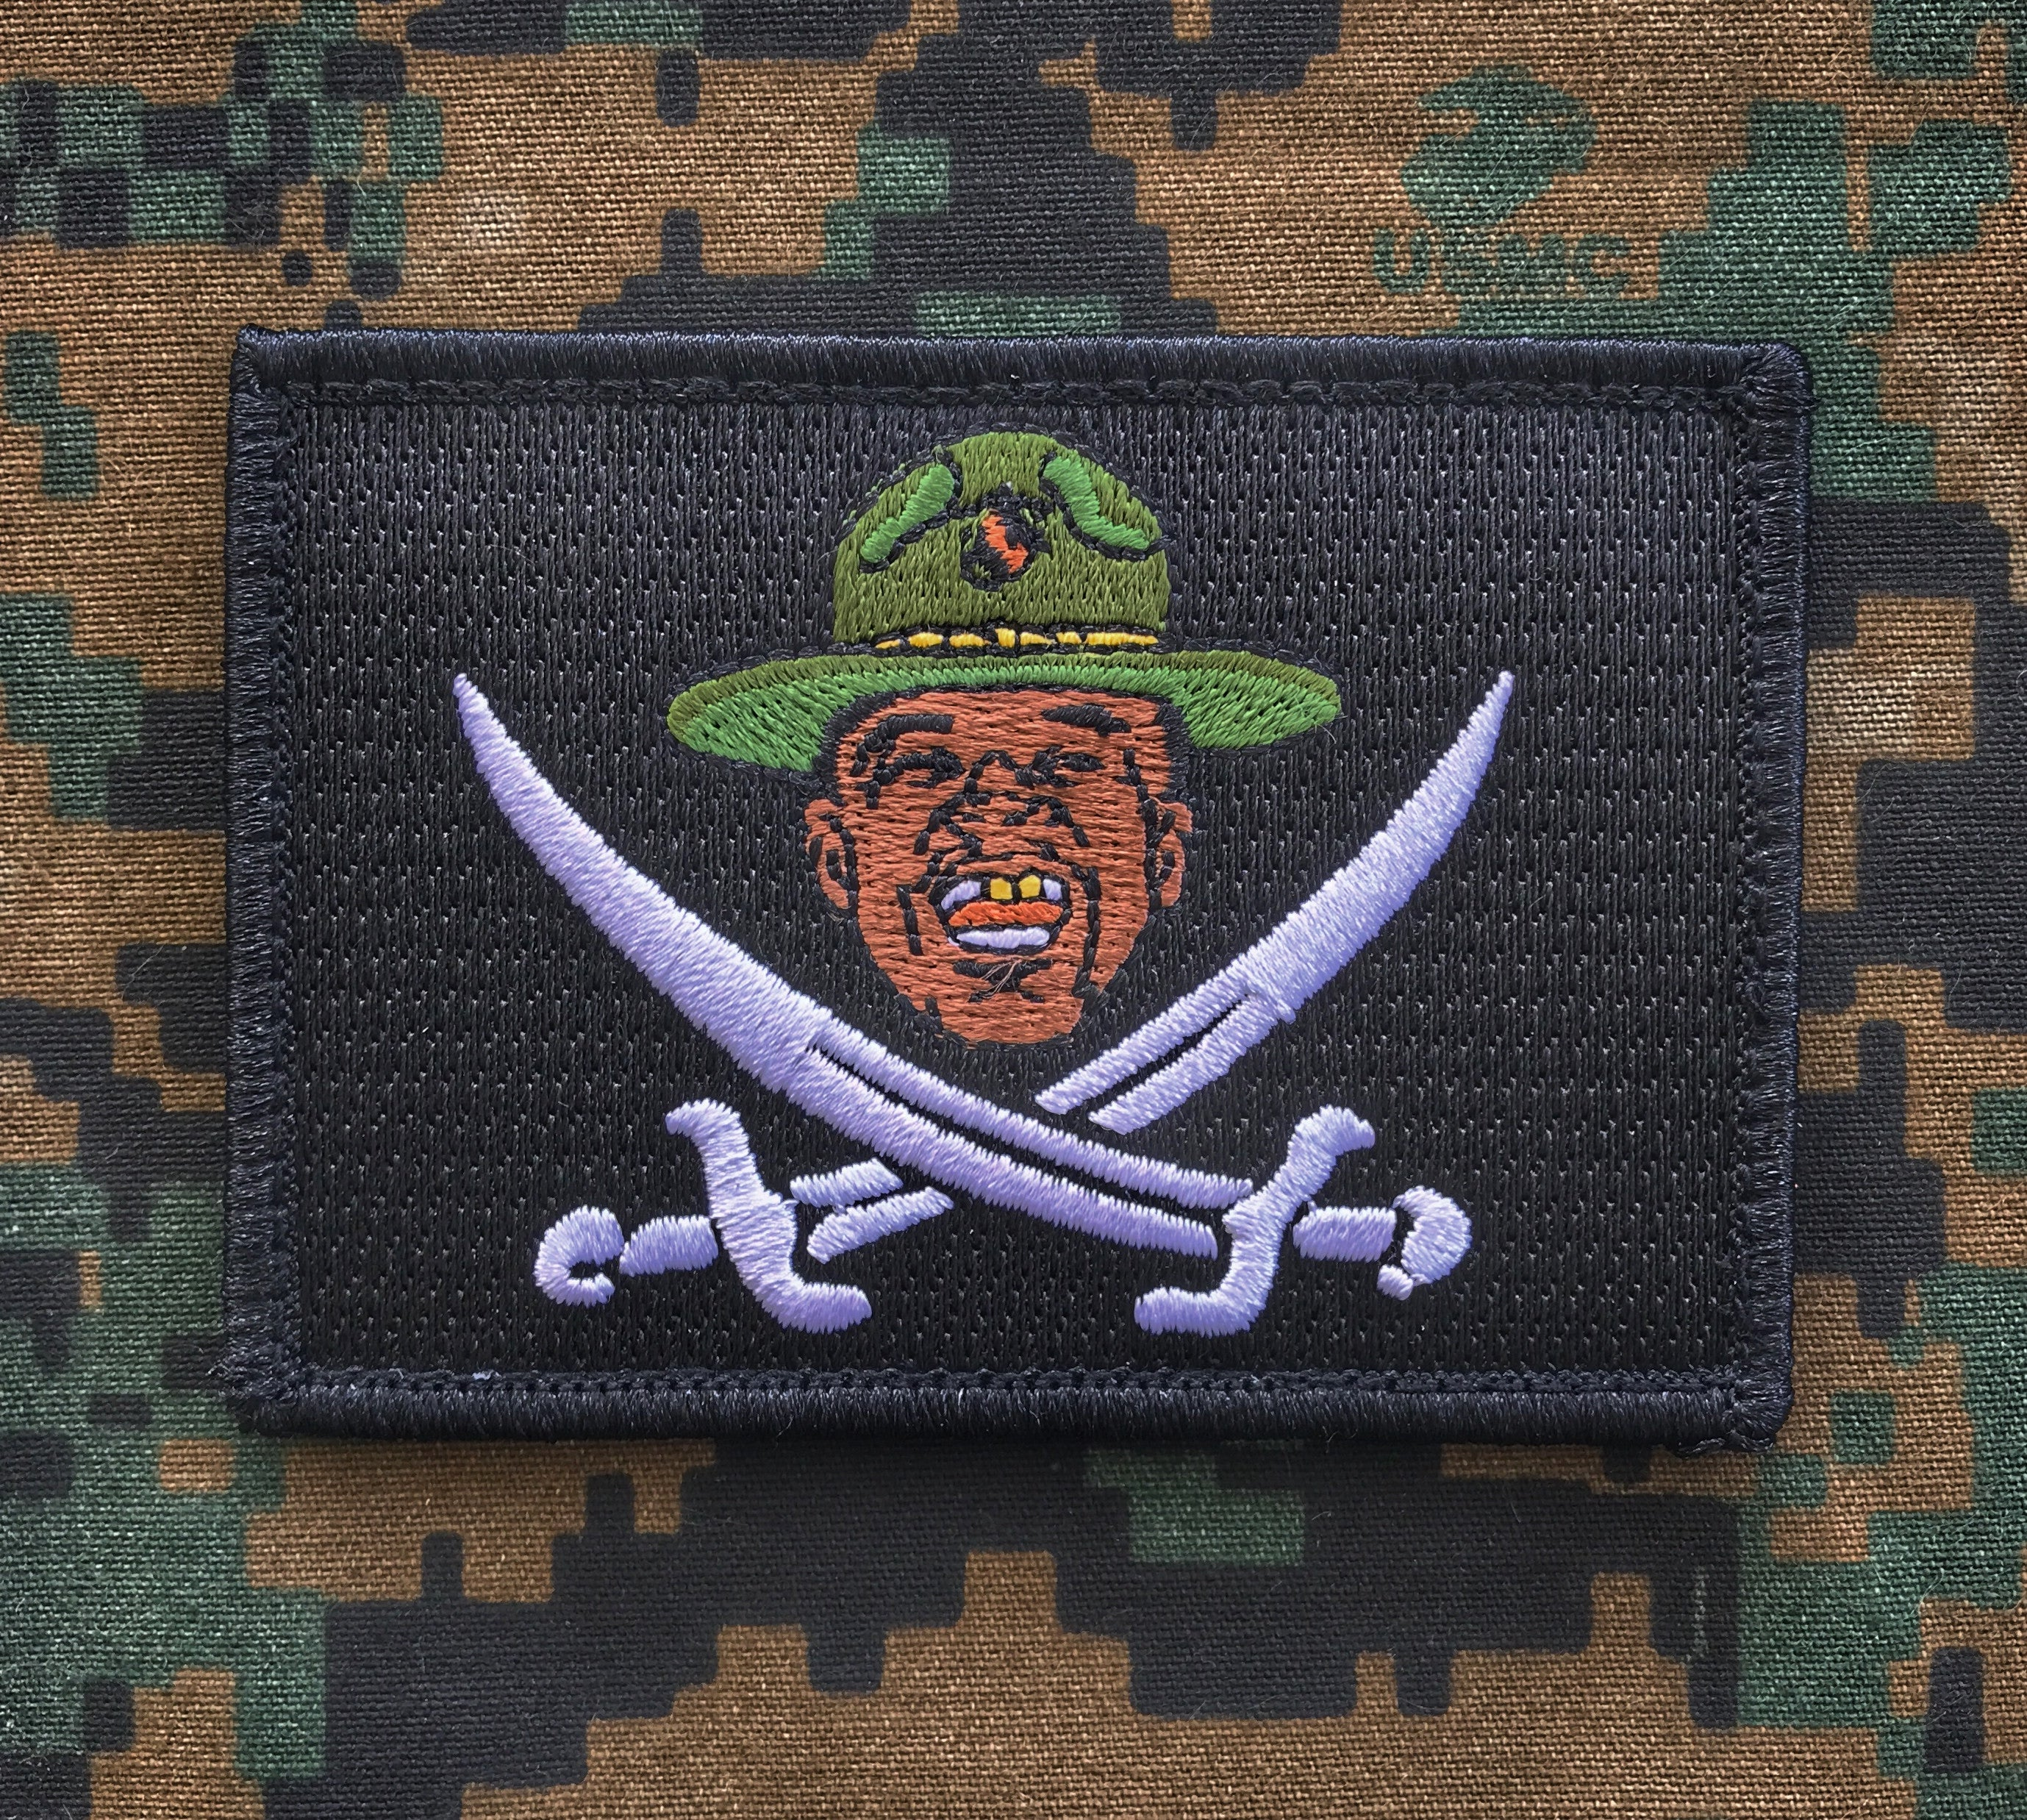 Major Payne Calico Pirate Flag Morale Patch